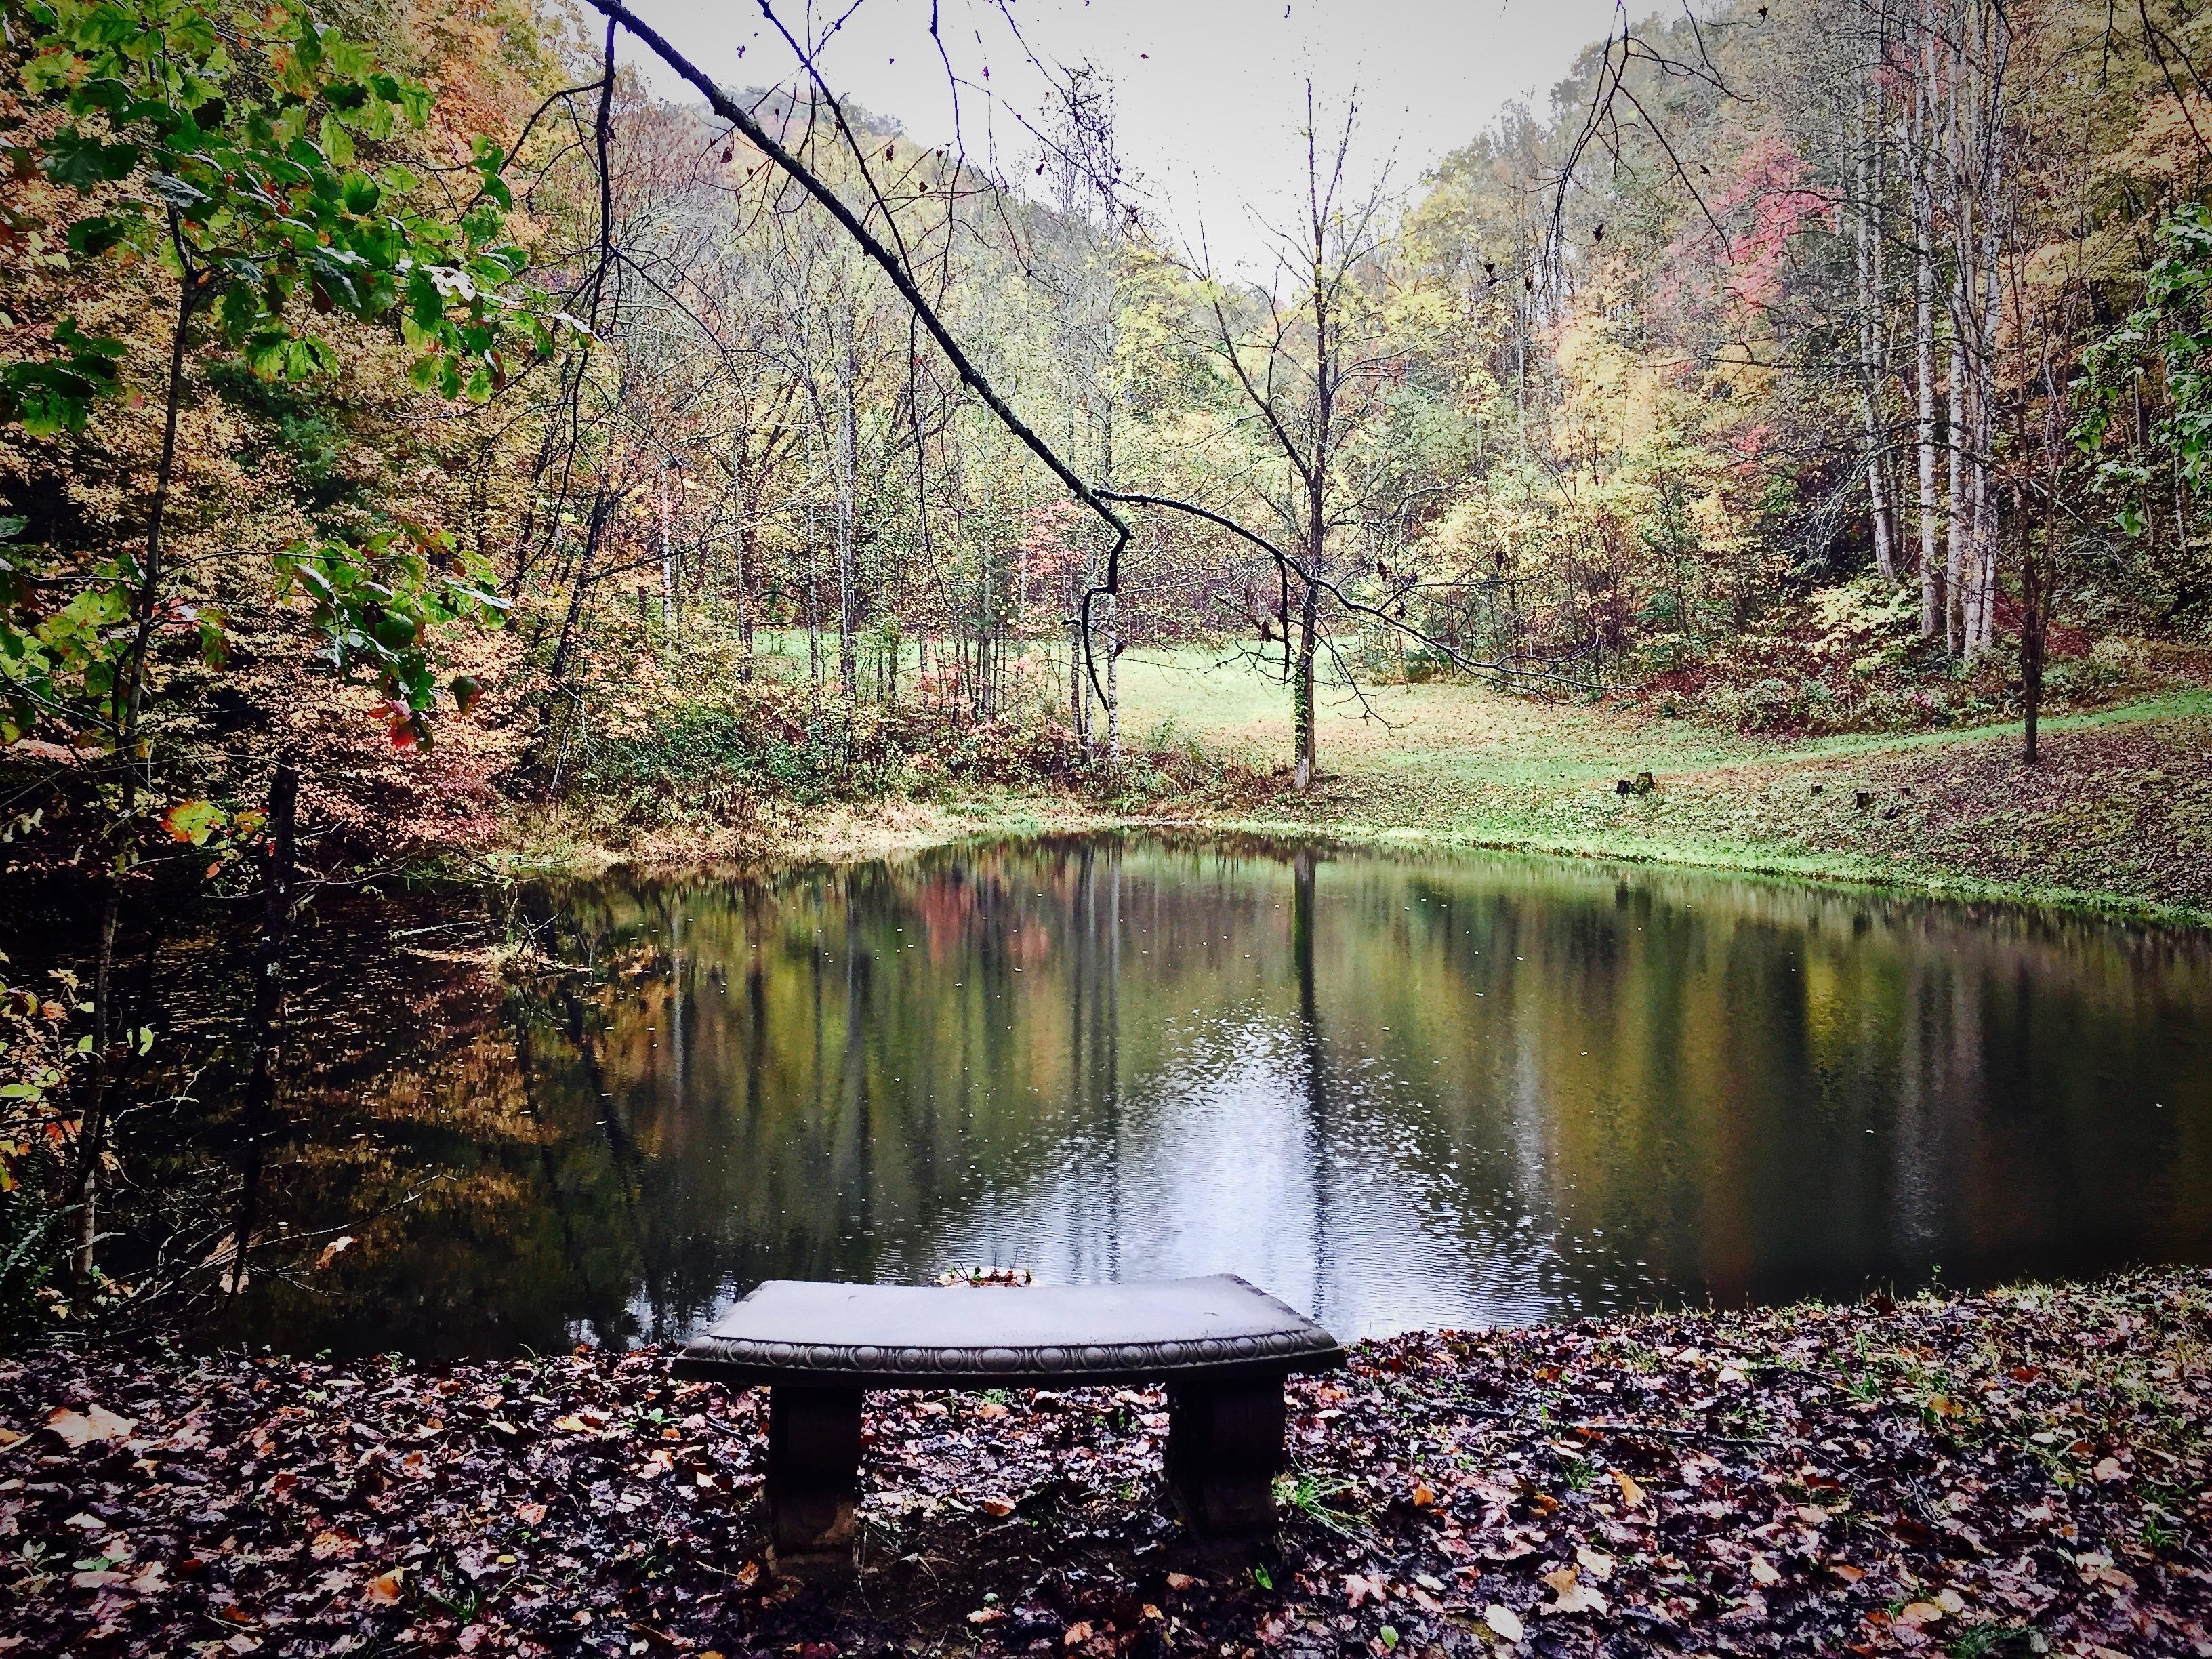 Bring your Poles, there is a great Fishing Pond, just a few minutes walk from the Cabin!